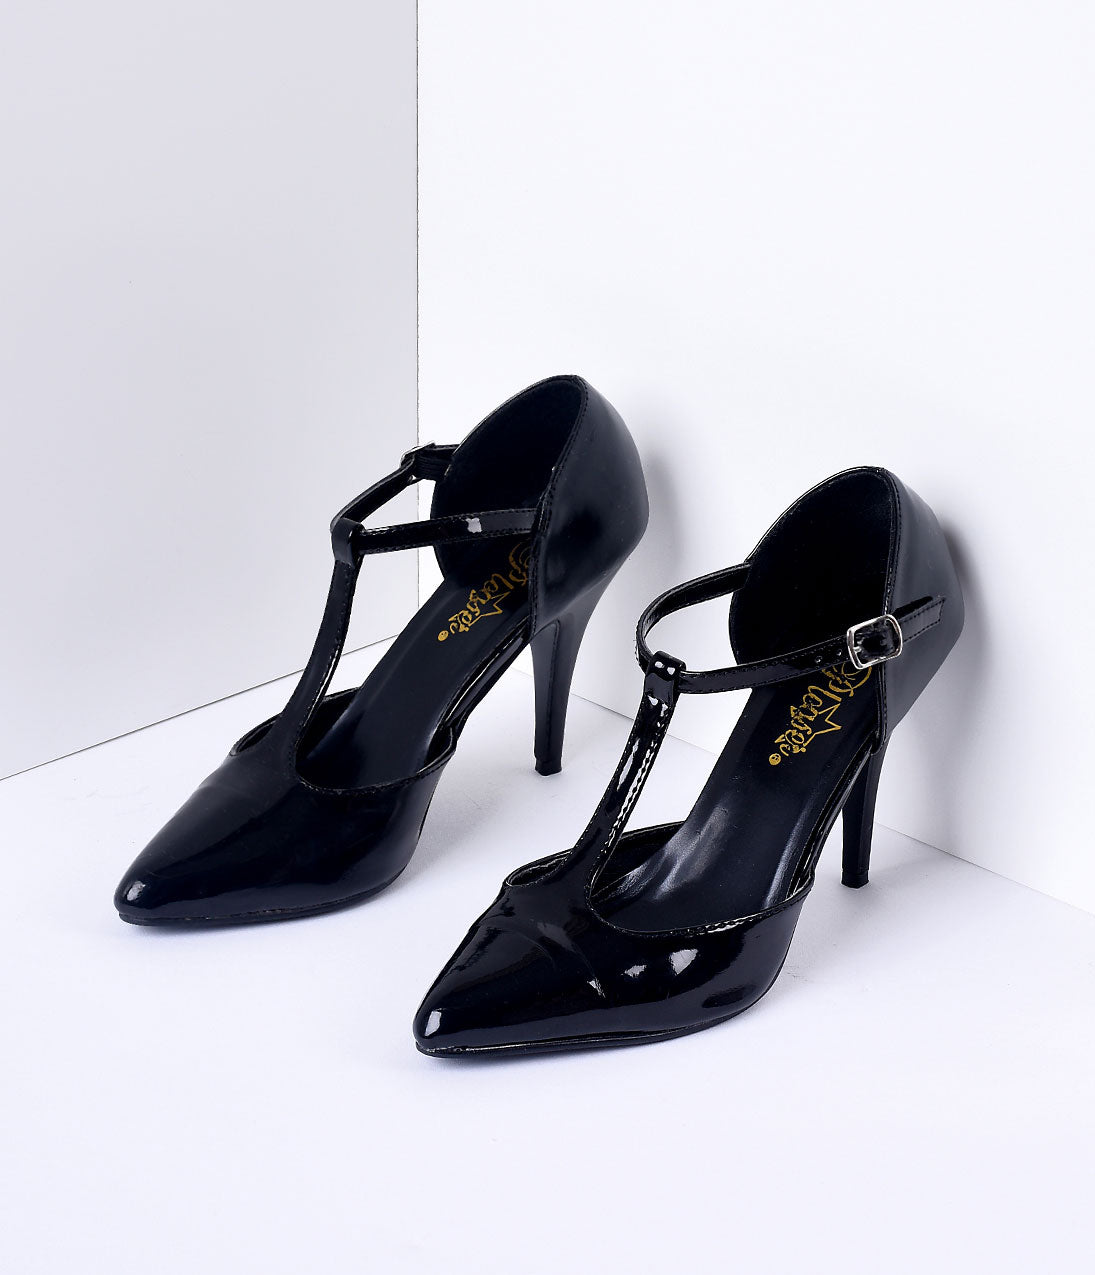 Rockabilly Shoes- Heels, Pumps, Boots, Flats 1920S Style Black T-Strap Heels $68.00 AT vintagedancer.com